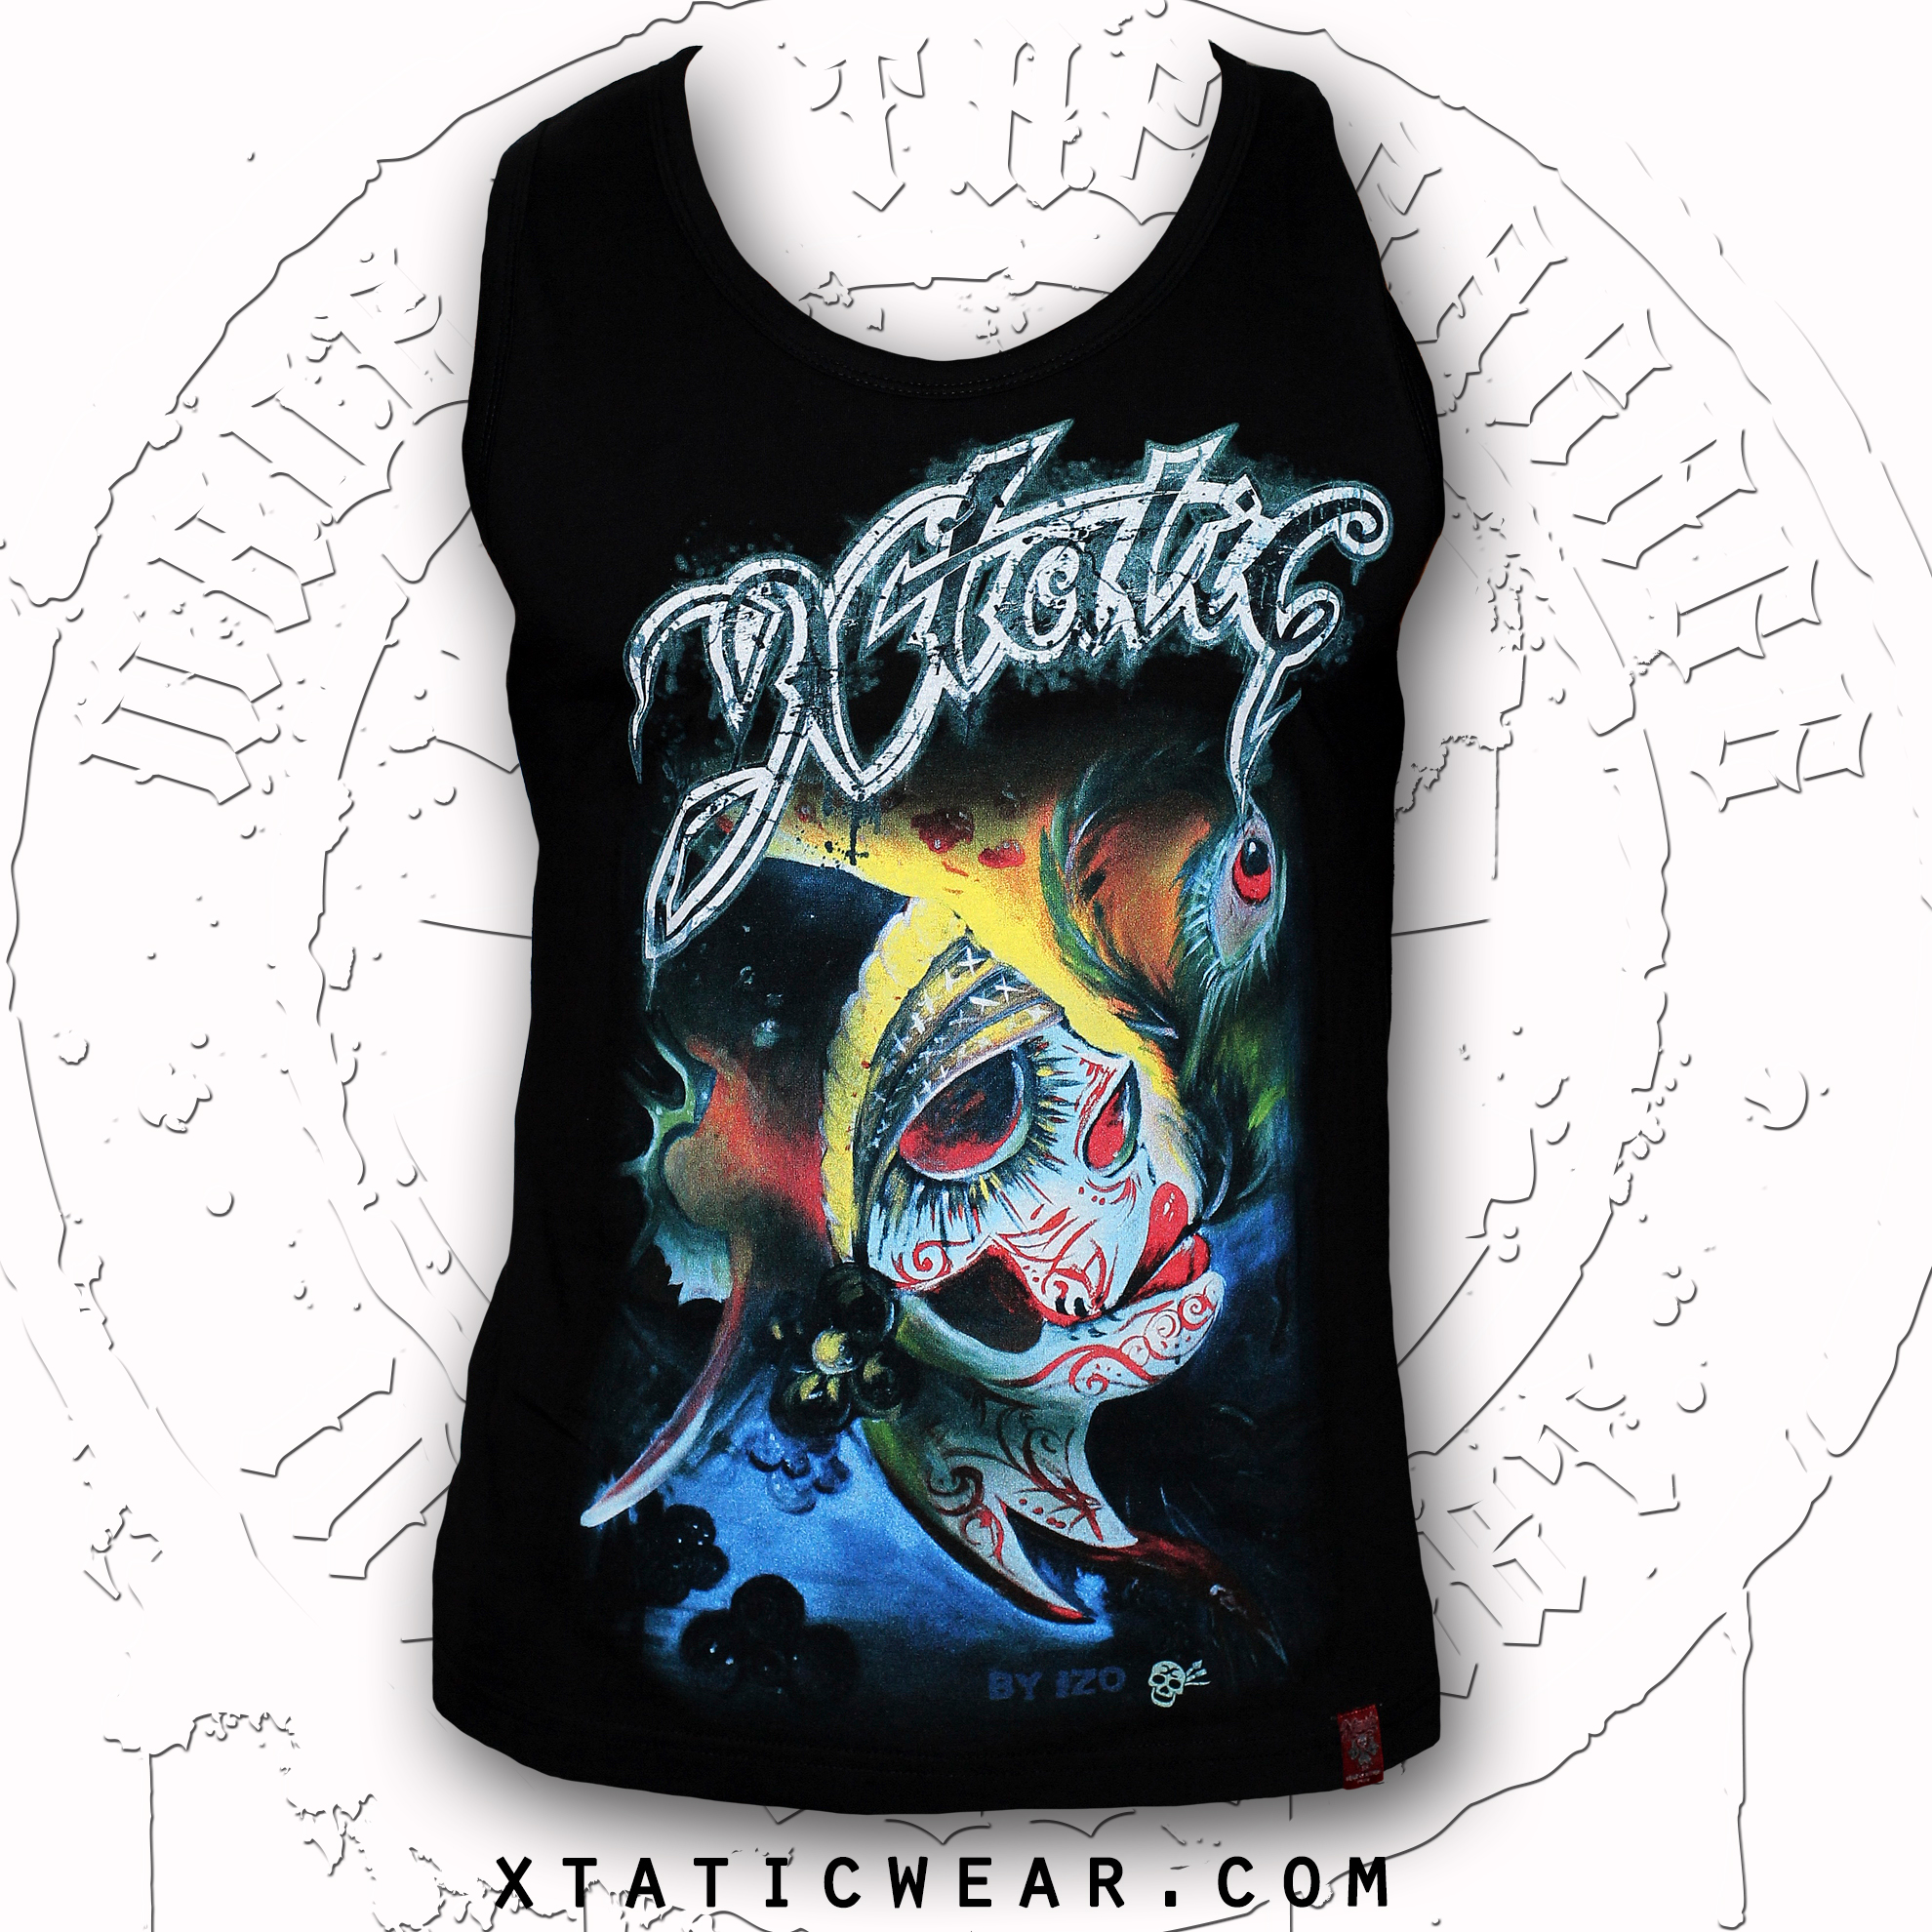 xtatic_wear_the_gypsy_art_tank_top_t_shirts_4.jpg